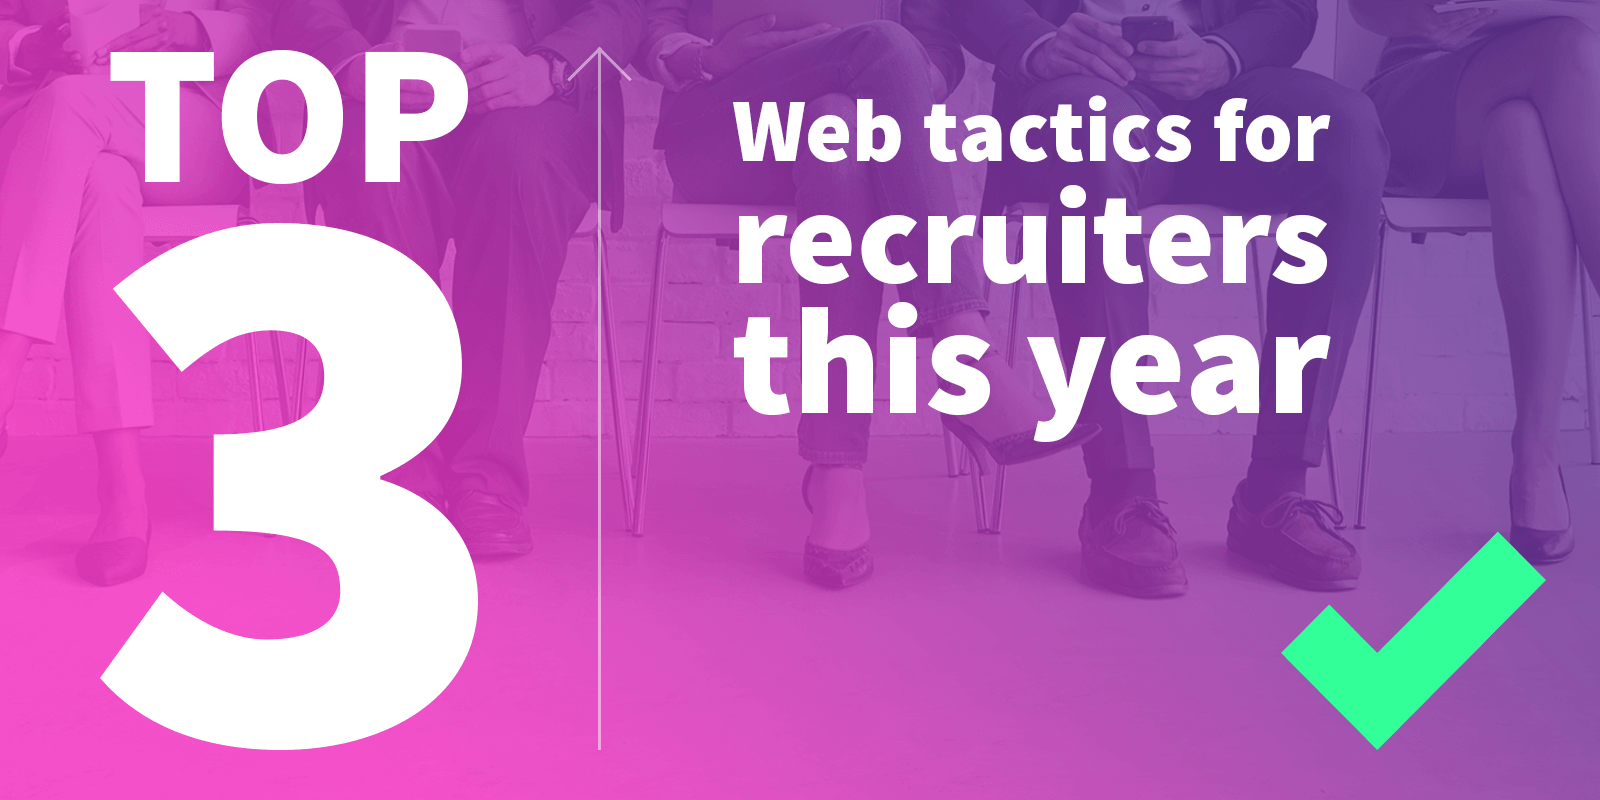 Top 3 web tactics for recruiters to try this year